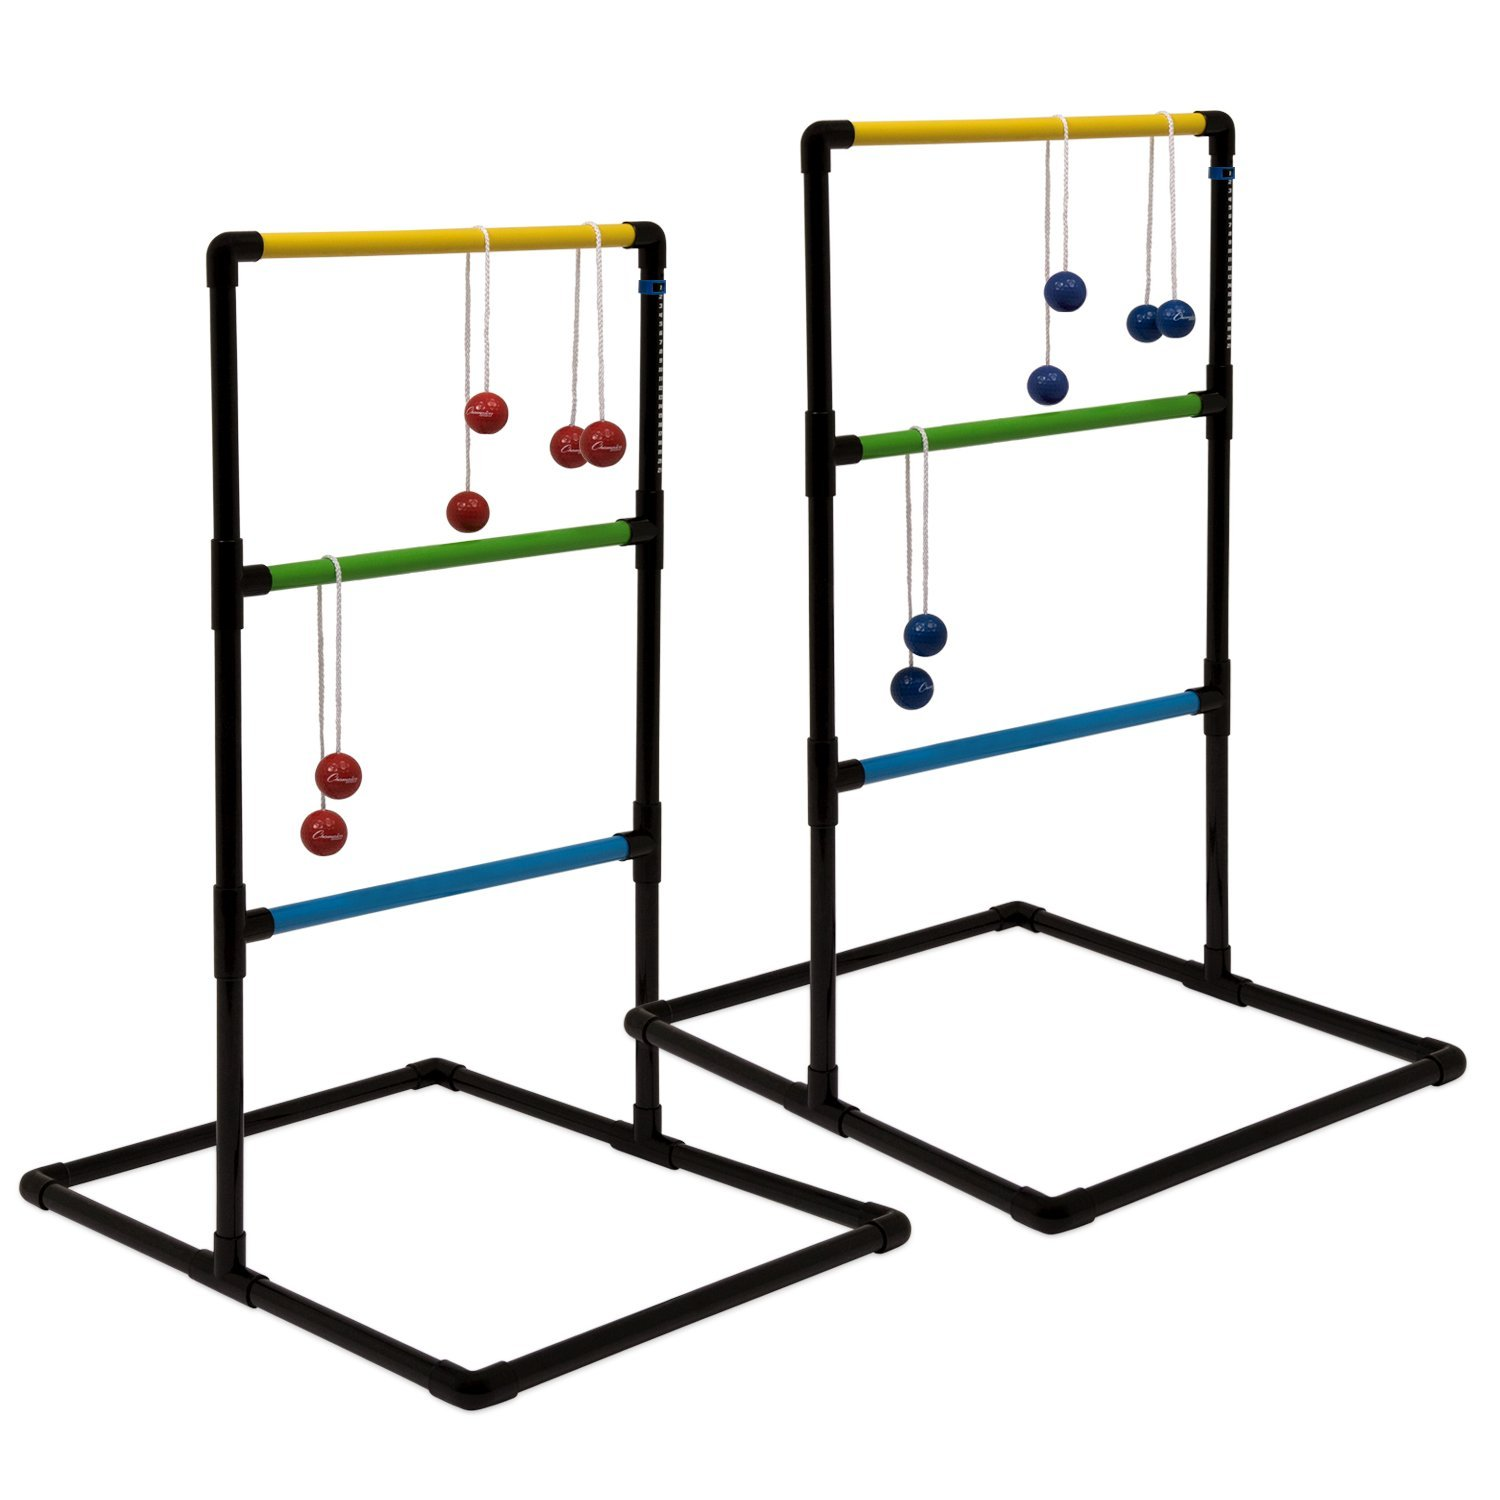 Champion Sports Outdoor Ladder Ball Game: Backyard Party, Camping & Beach Games Ladder Golf Set for Adults and Kids with Bolas Balls and Carrying Case by Champion Sports